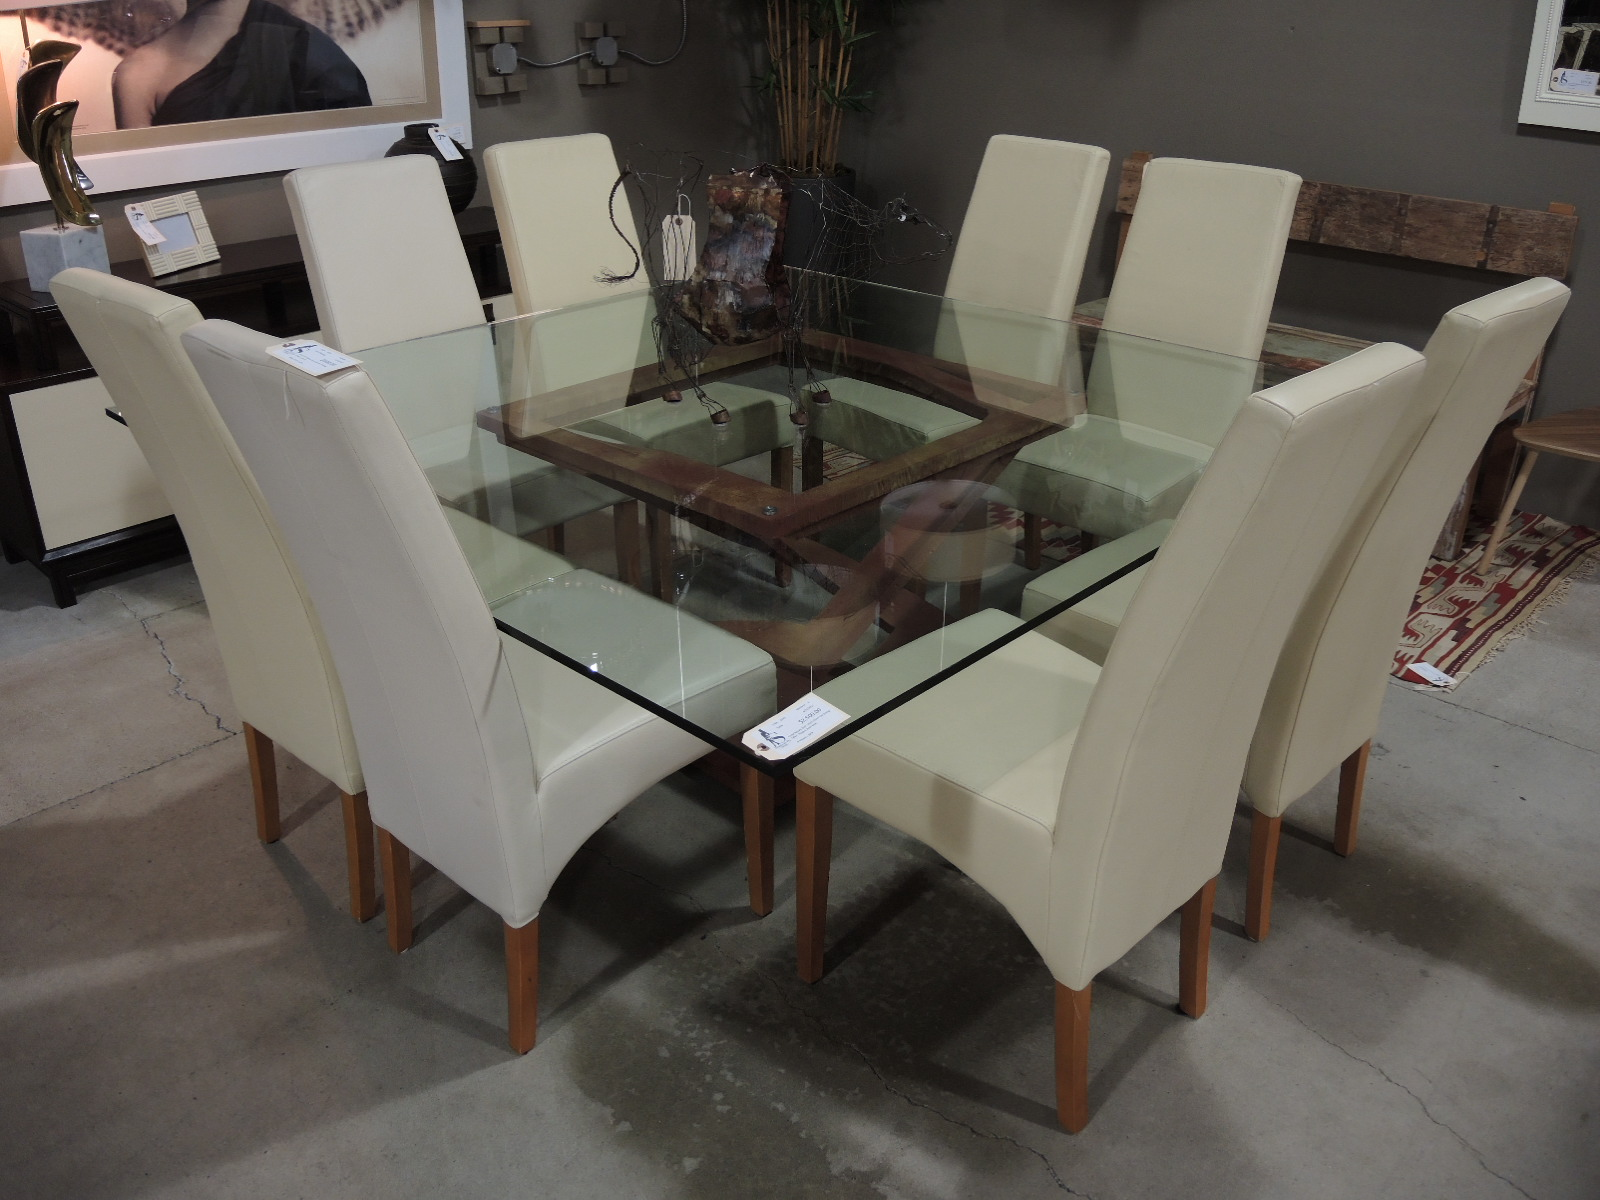 Modern Square Glass Dining Table Elegant Find This Pin